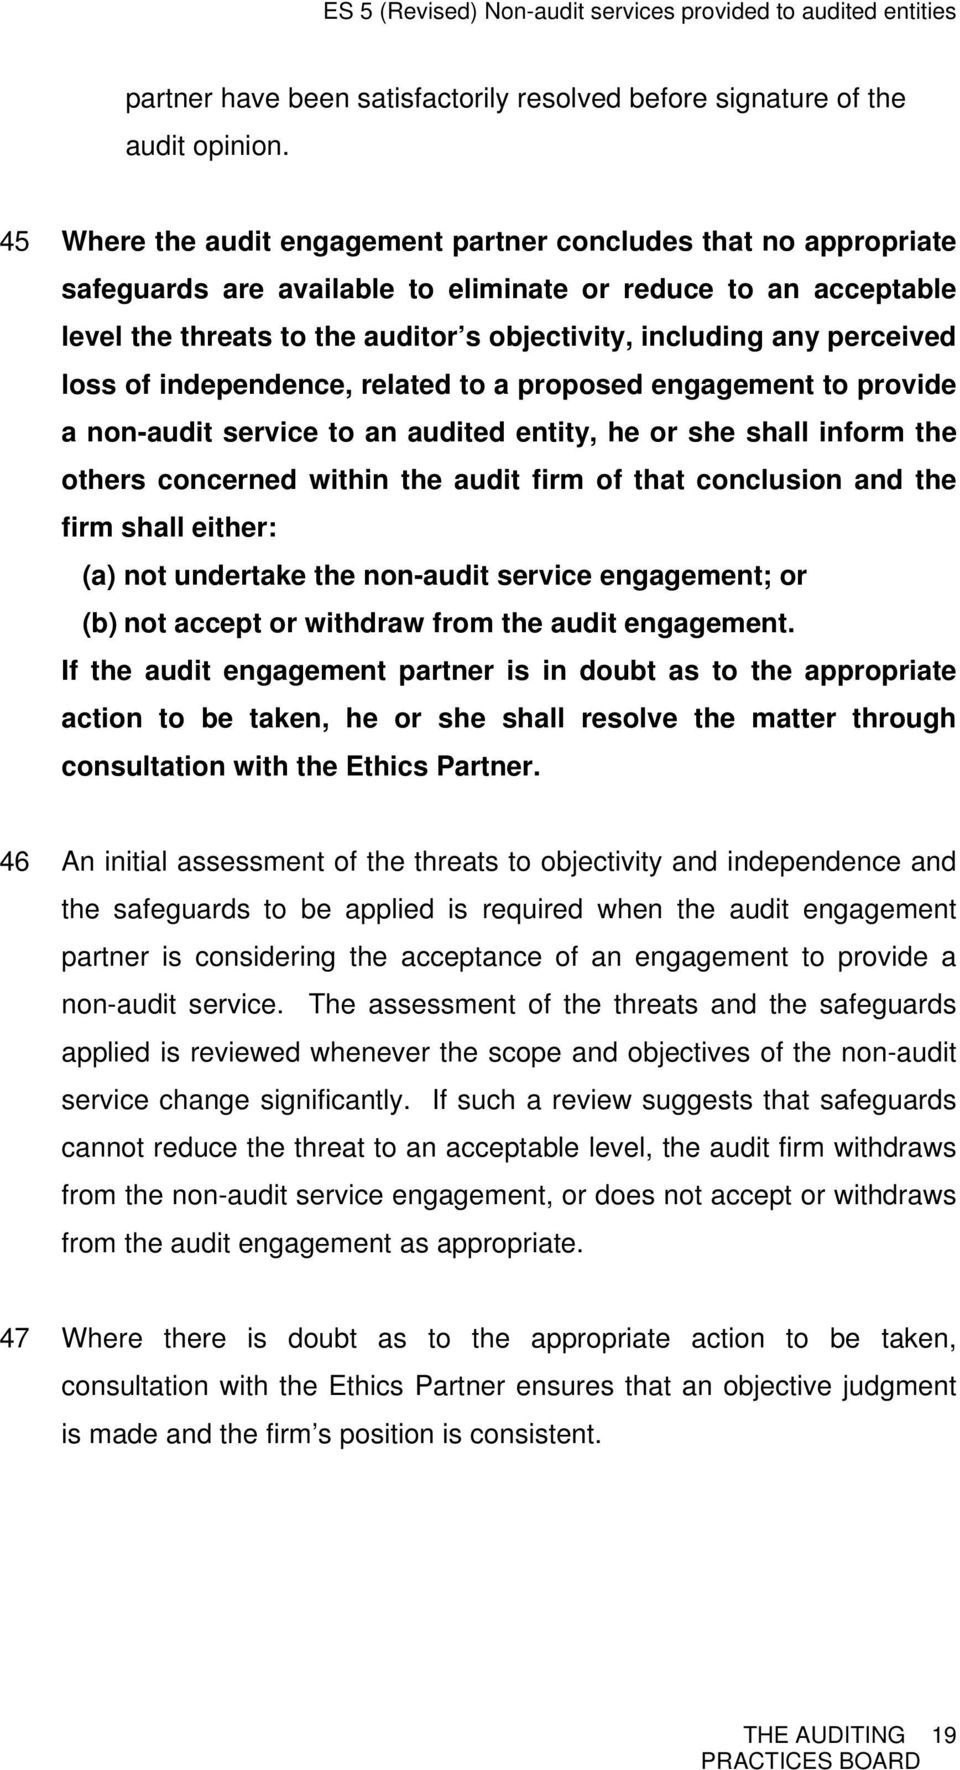 perceived loss of independence, related to a proposed engagement to provide a non-audit service to an audited entity, he or she shall inform the others concerned within the audit firm of that